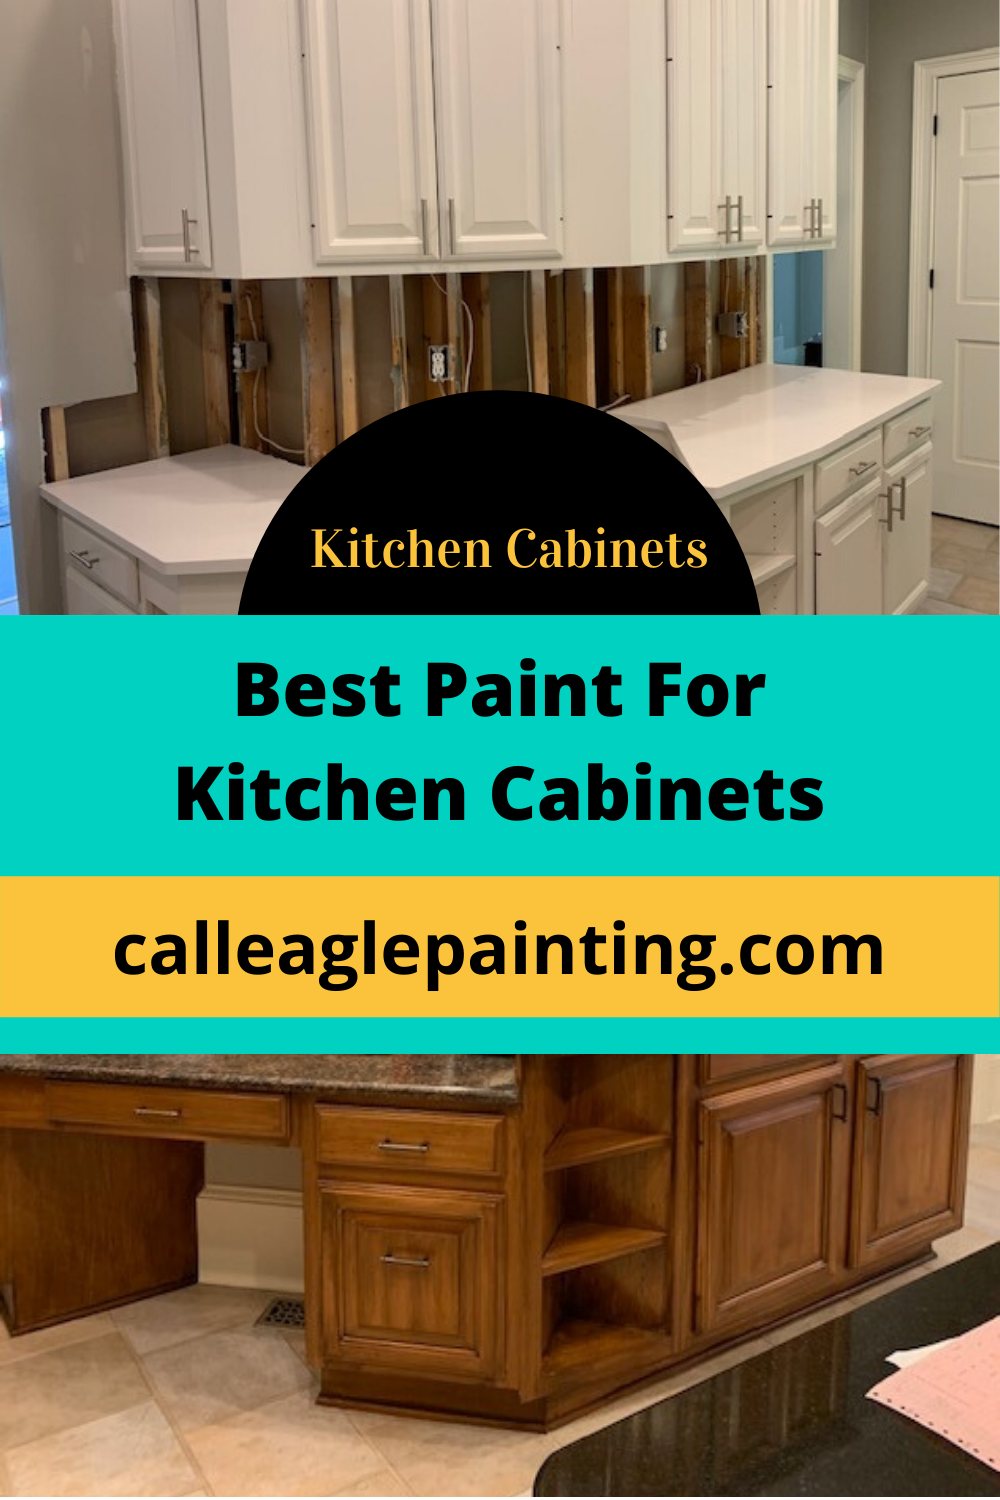 Best Paint For Kitchen Cabinets Best Paint For Kitchen Kitchen Paint Painting Kitchen Cabinets